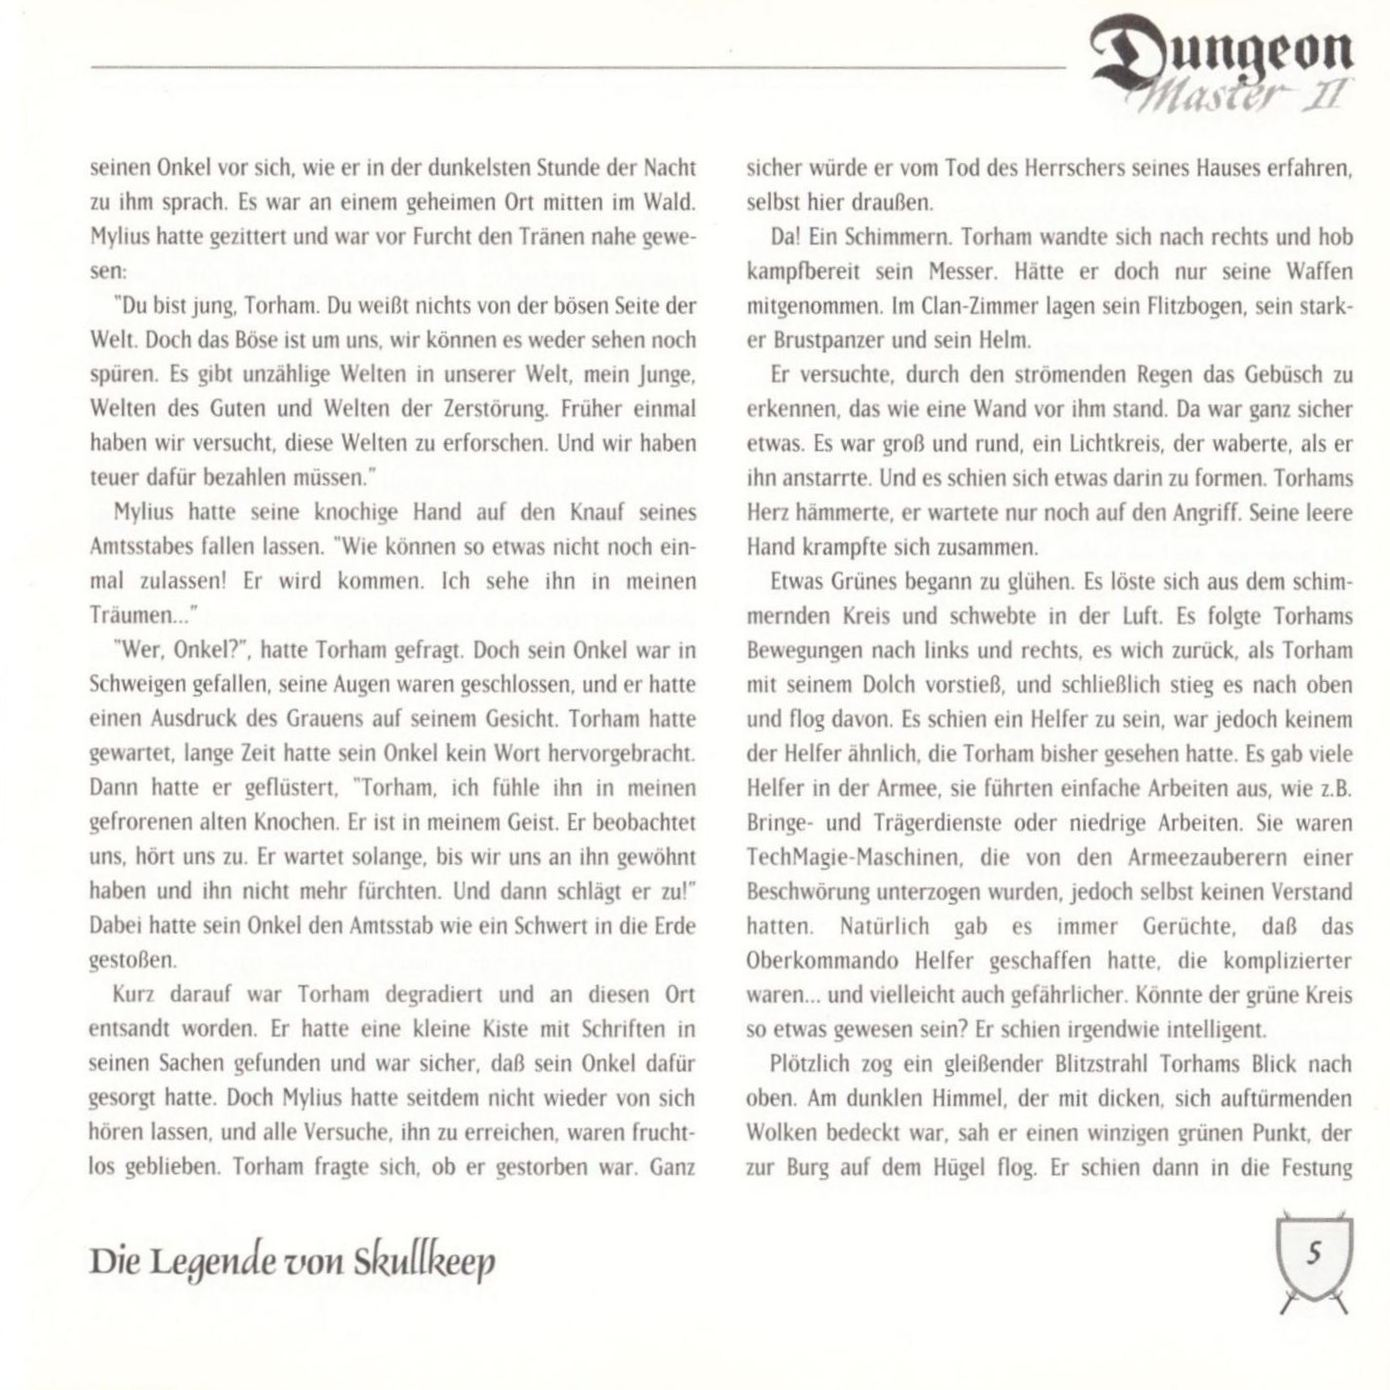 Game - Dungeon Master II - DE - PC - Blackmarket With Booklet - Booklet - Page 007 - Scan